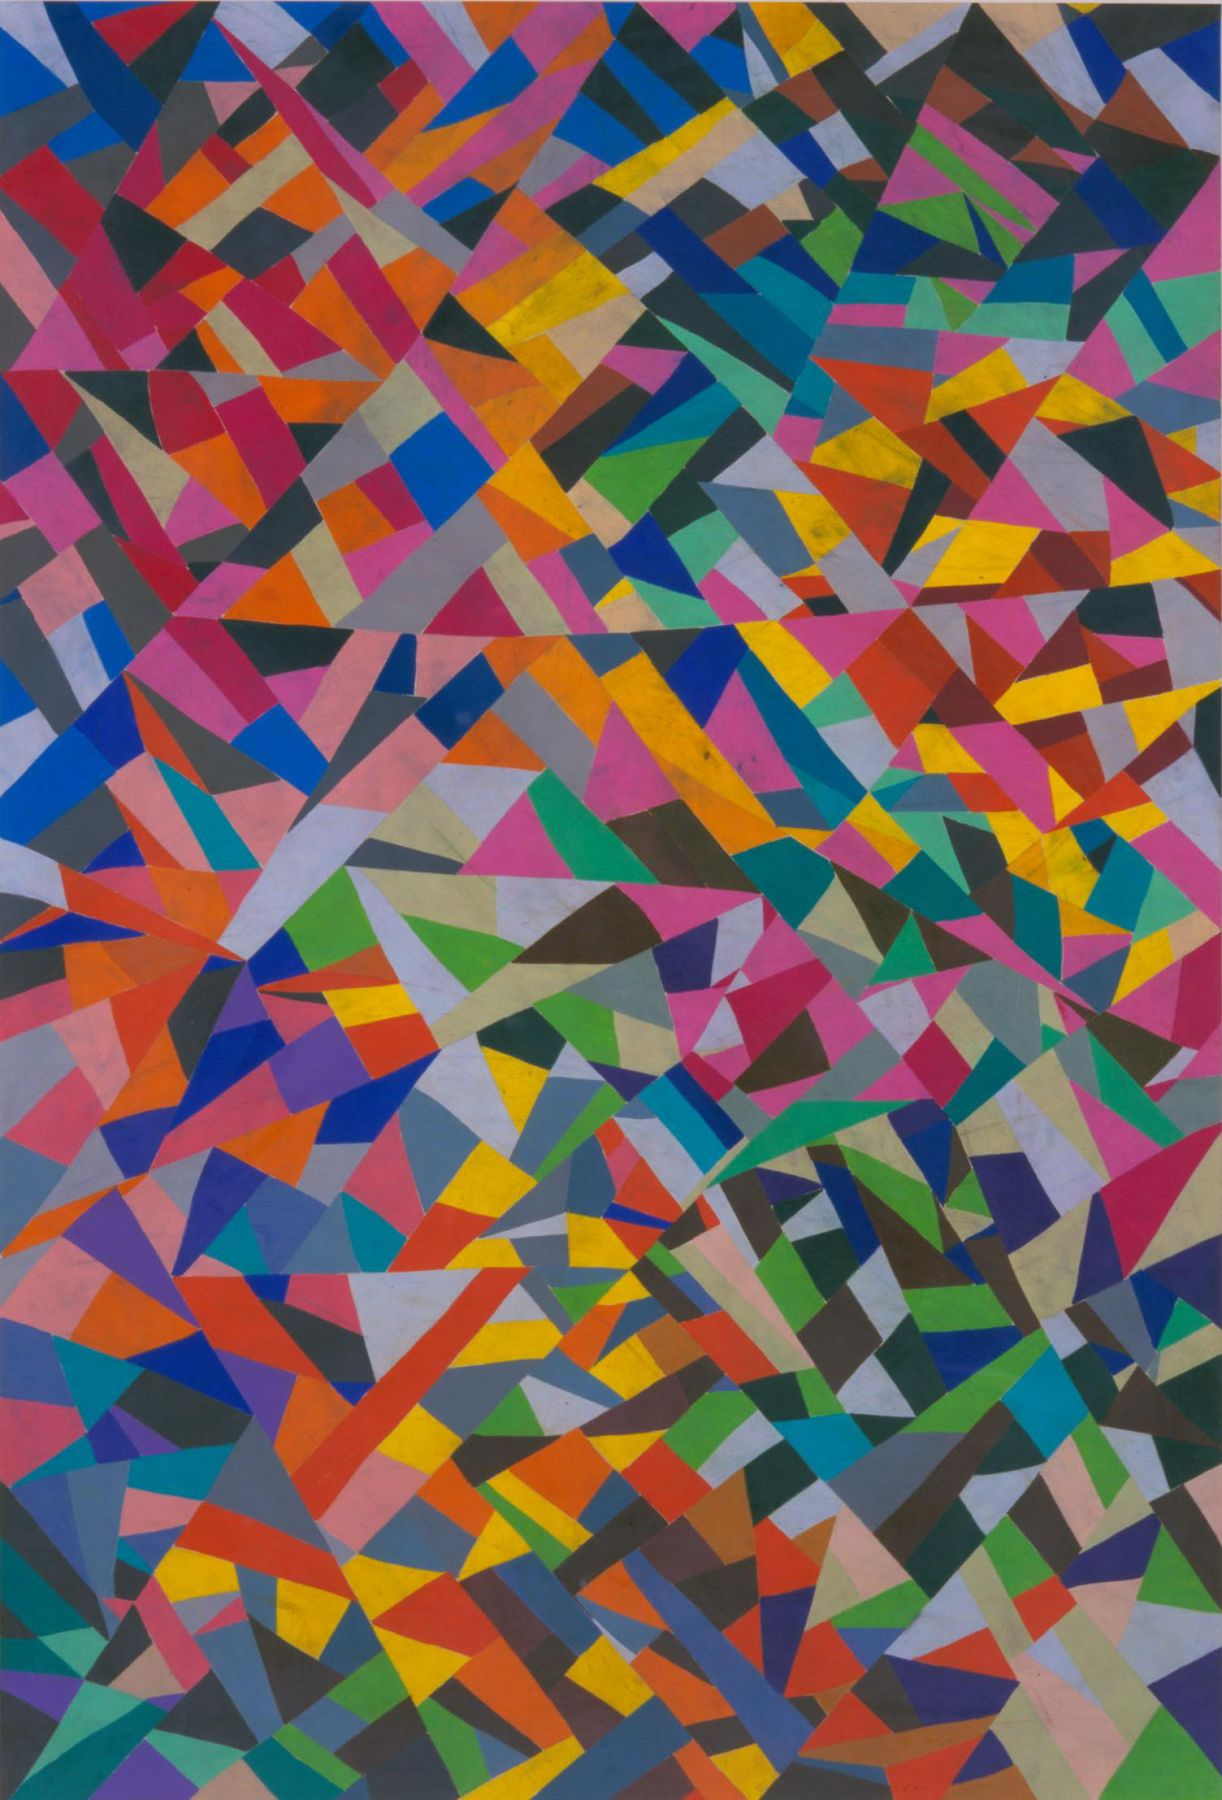 colorful painting with abstract shapes by william j. o'brien